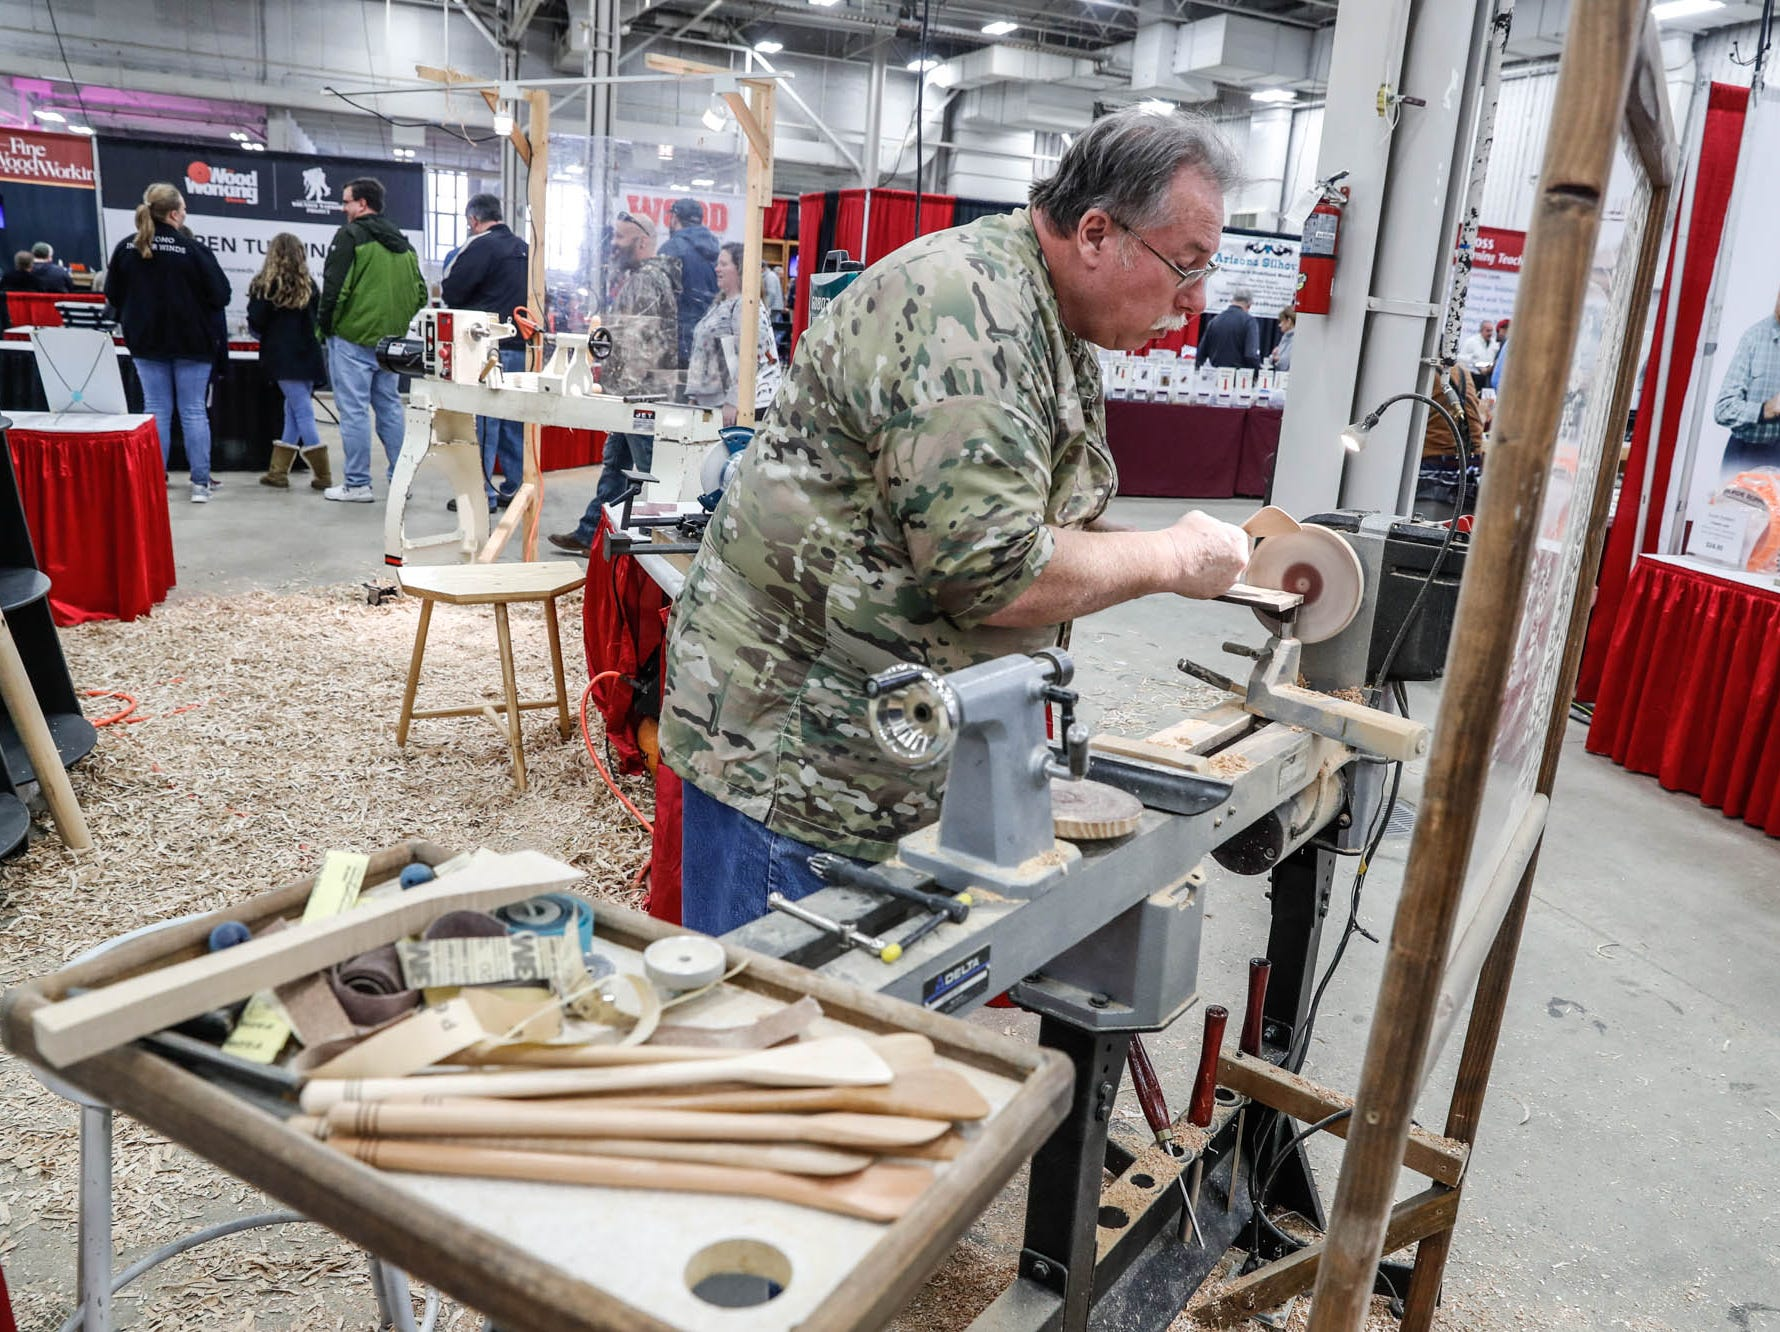 Dahl Perry turns kitchen utensils during a demo at the Wood Working Show at the Indiana State Fairgrounds in Indianapolis on Sunday, Feb. 3, 2019.